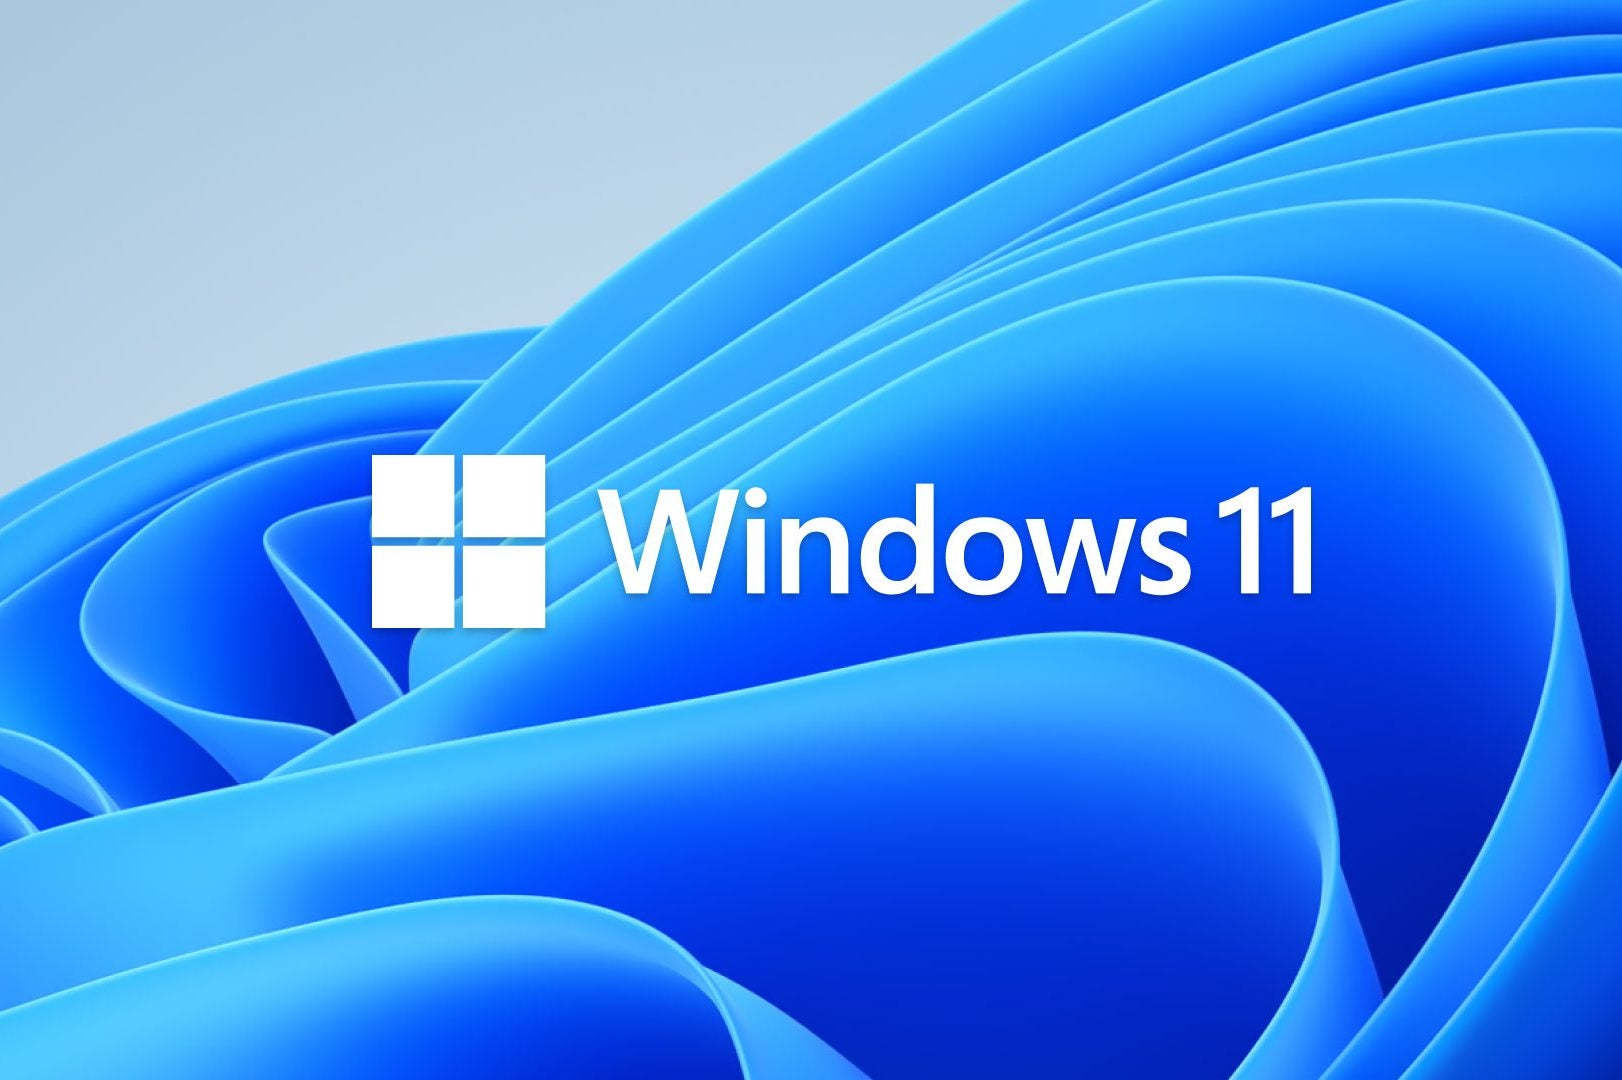 Windows 11: Release date, price, features, beta, and system requirements